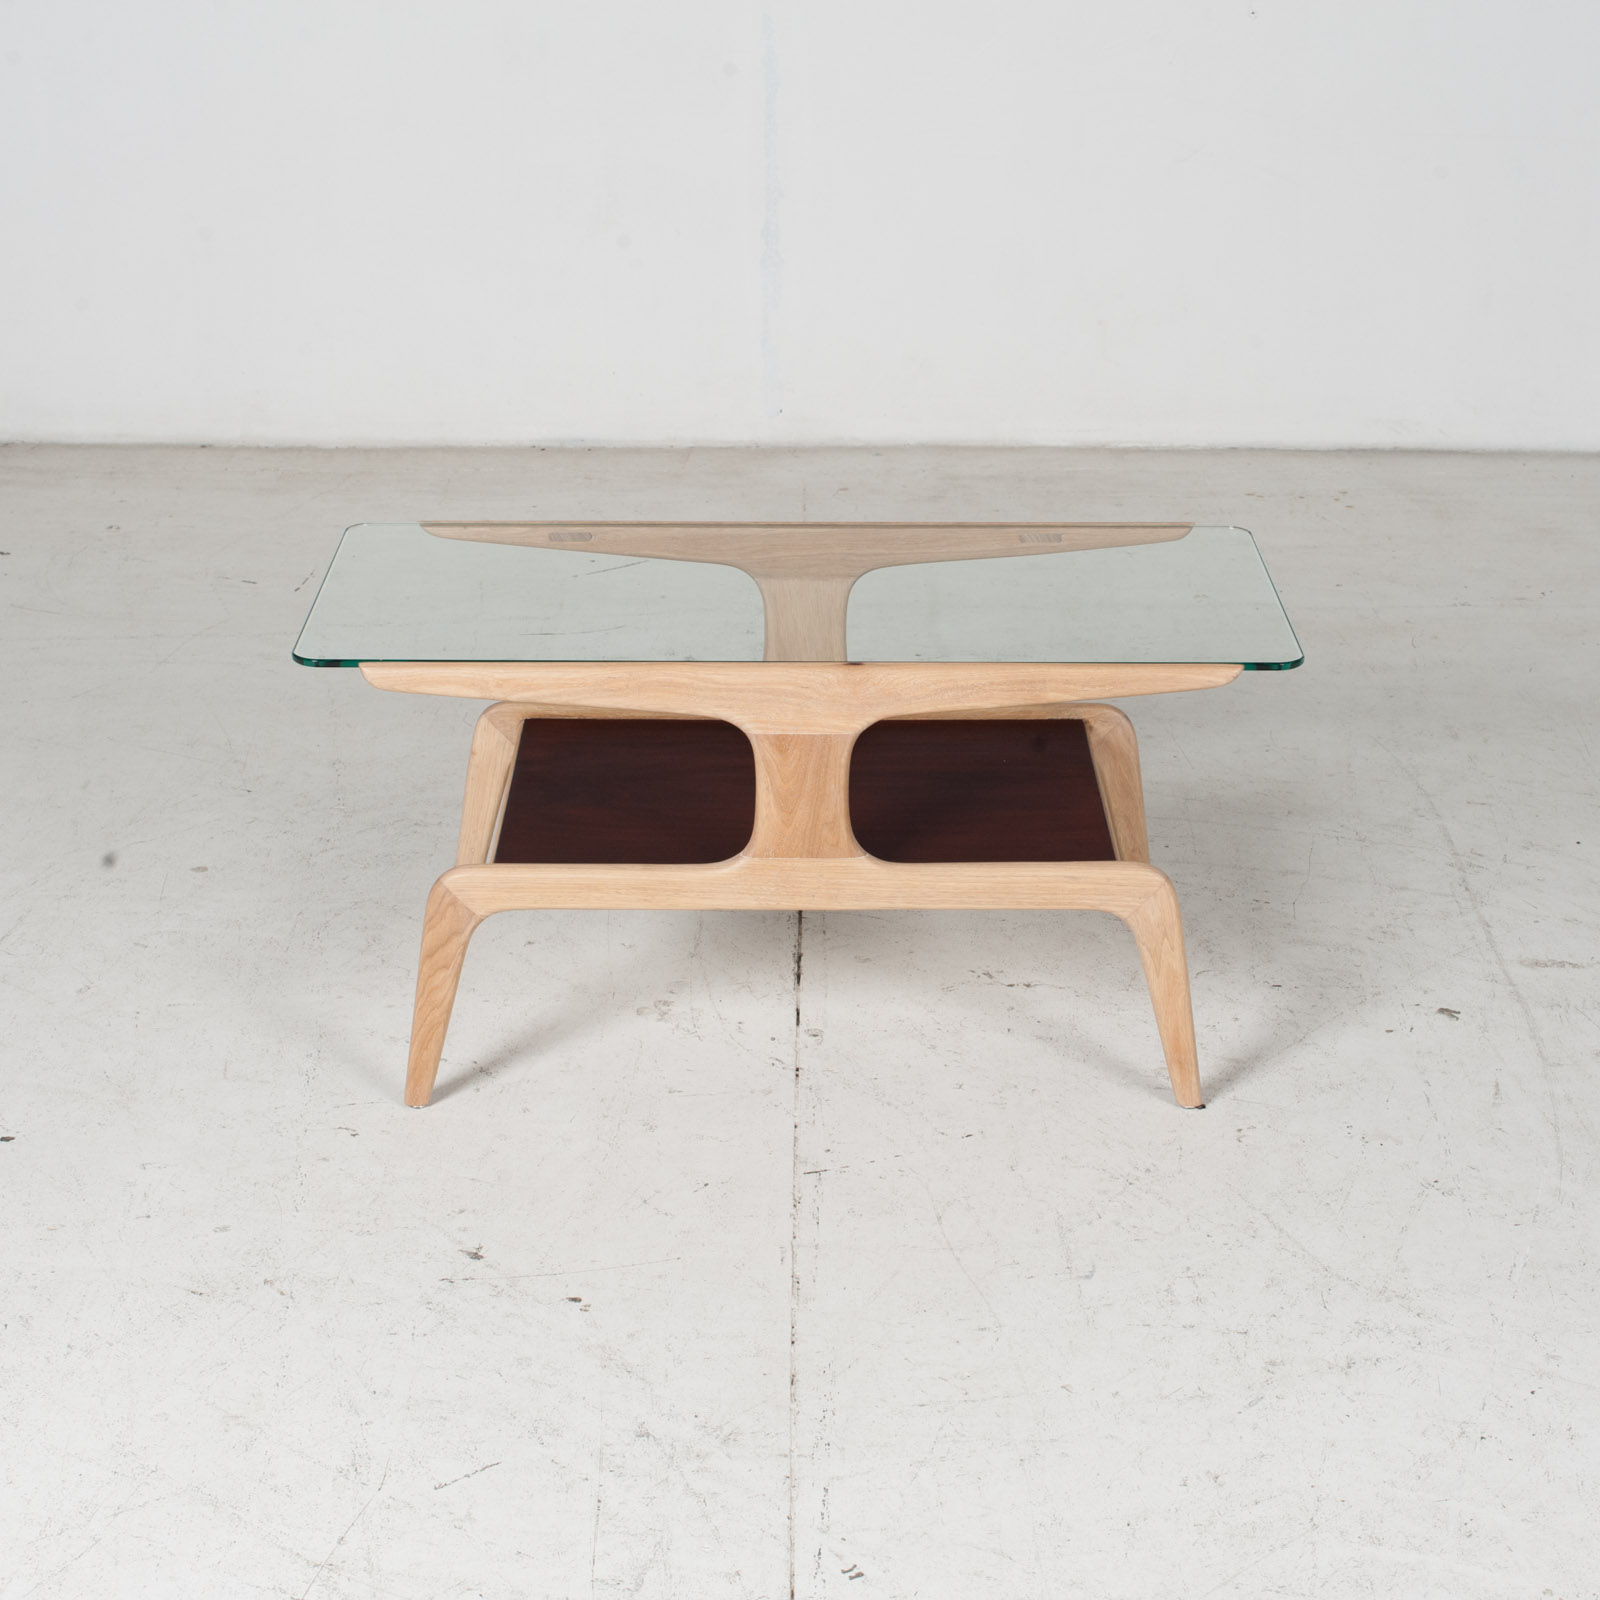 Coffee Table By Gio Ponti For Domus Nova, 1920s, Italy 2